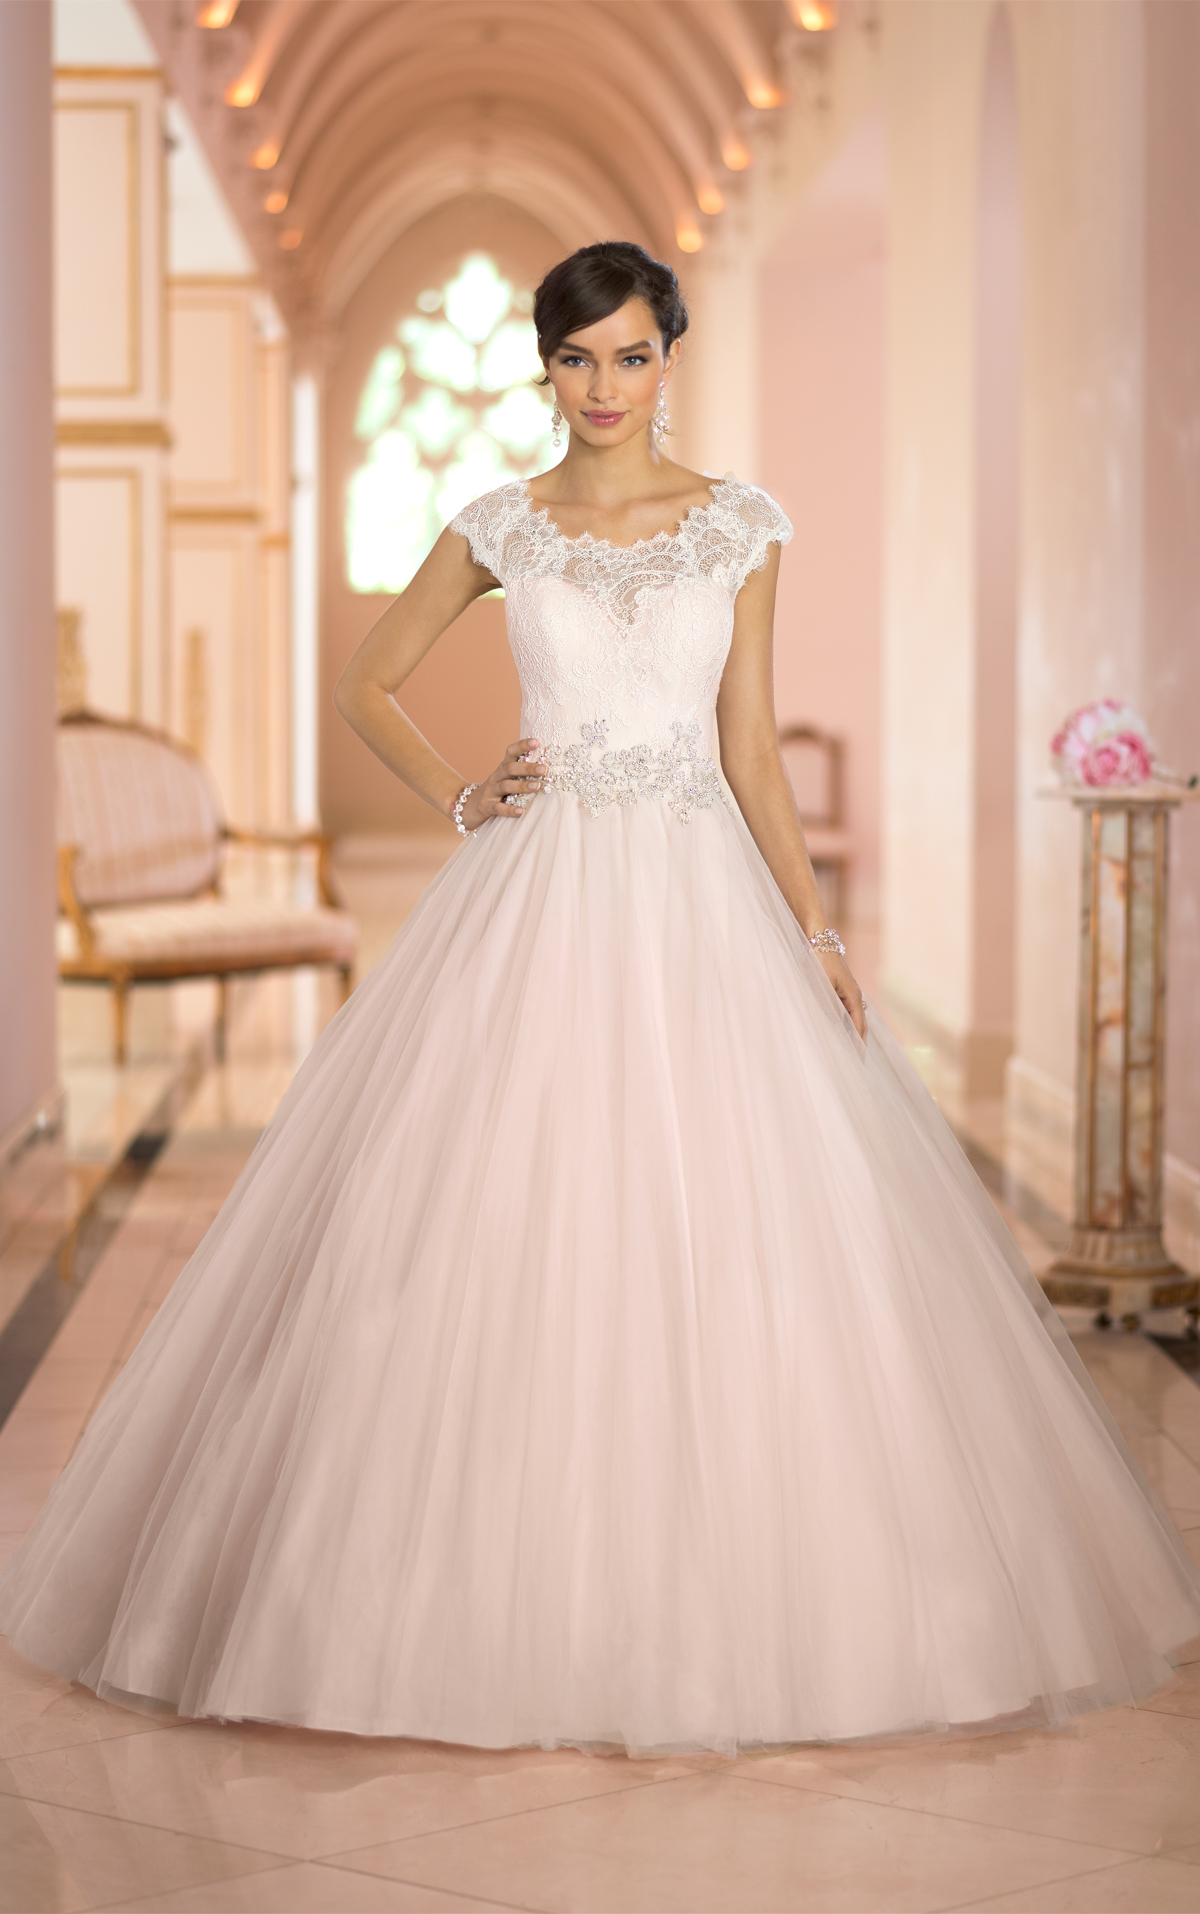 Sexy and extravagant stella york wedding dresses 2014 modwedding stella york wedding dresses 2014 19 01162014 ombrellifo Images